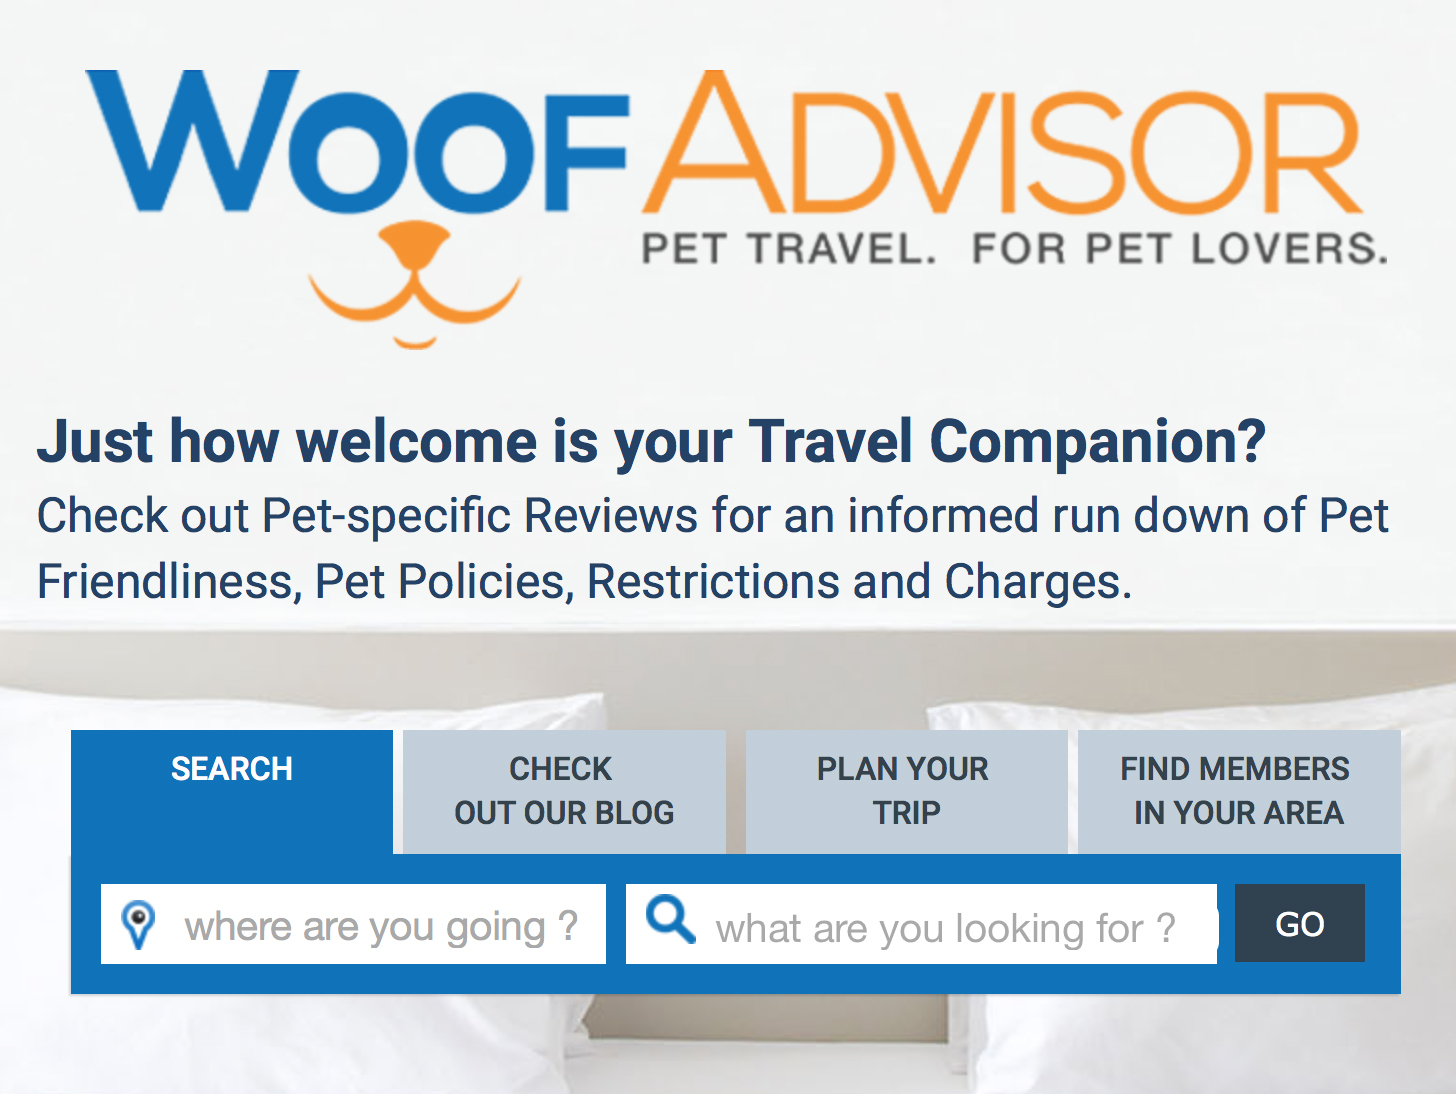 WOOFADVISOR   The team will be on hand to tell you all about their super-helpful 'pet travel, for pet lovers' website. Don't leave home without it...